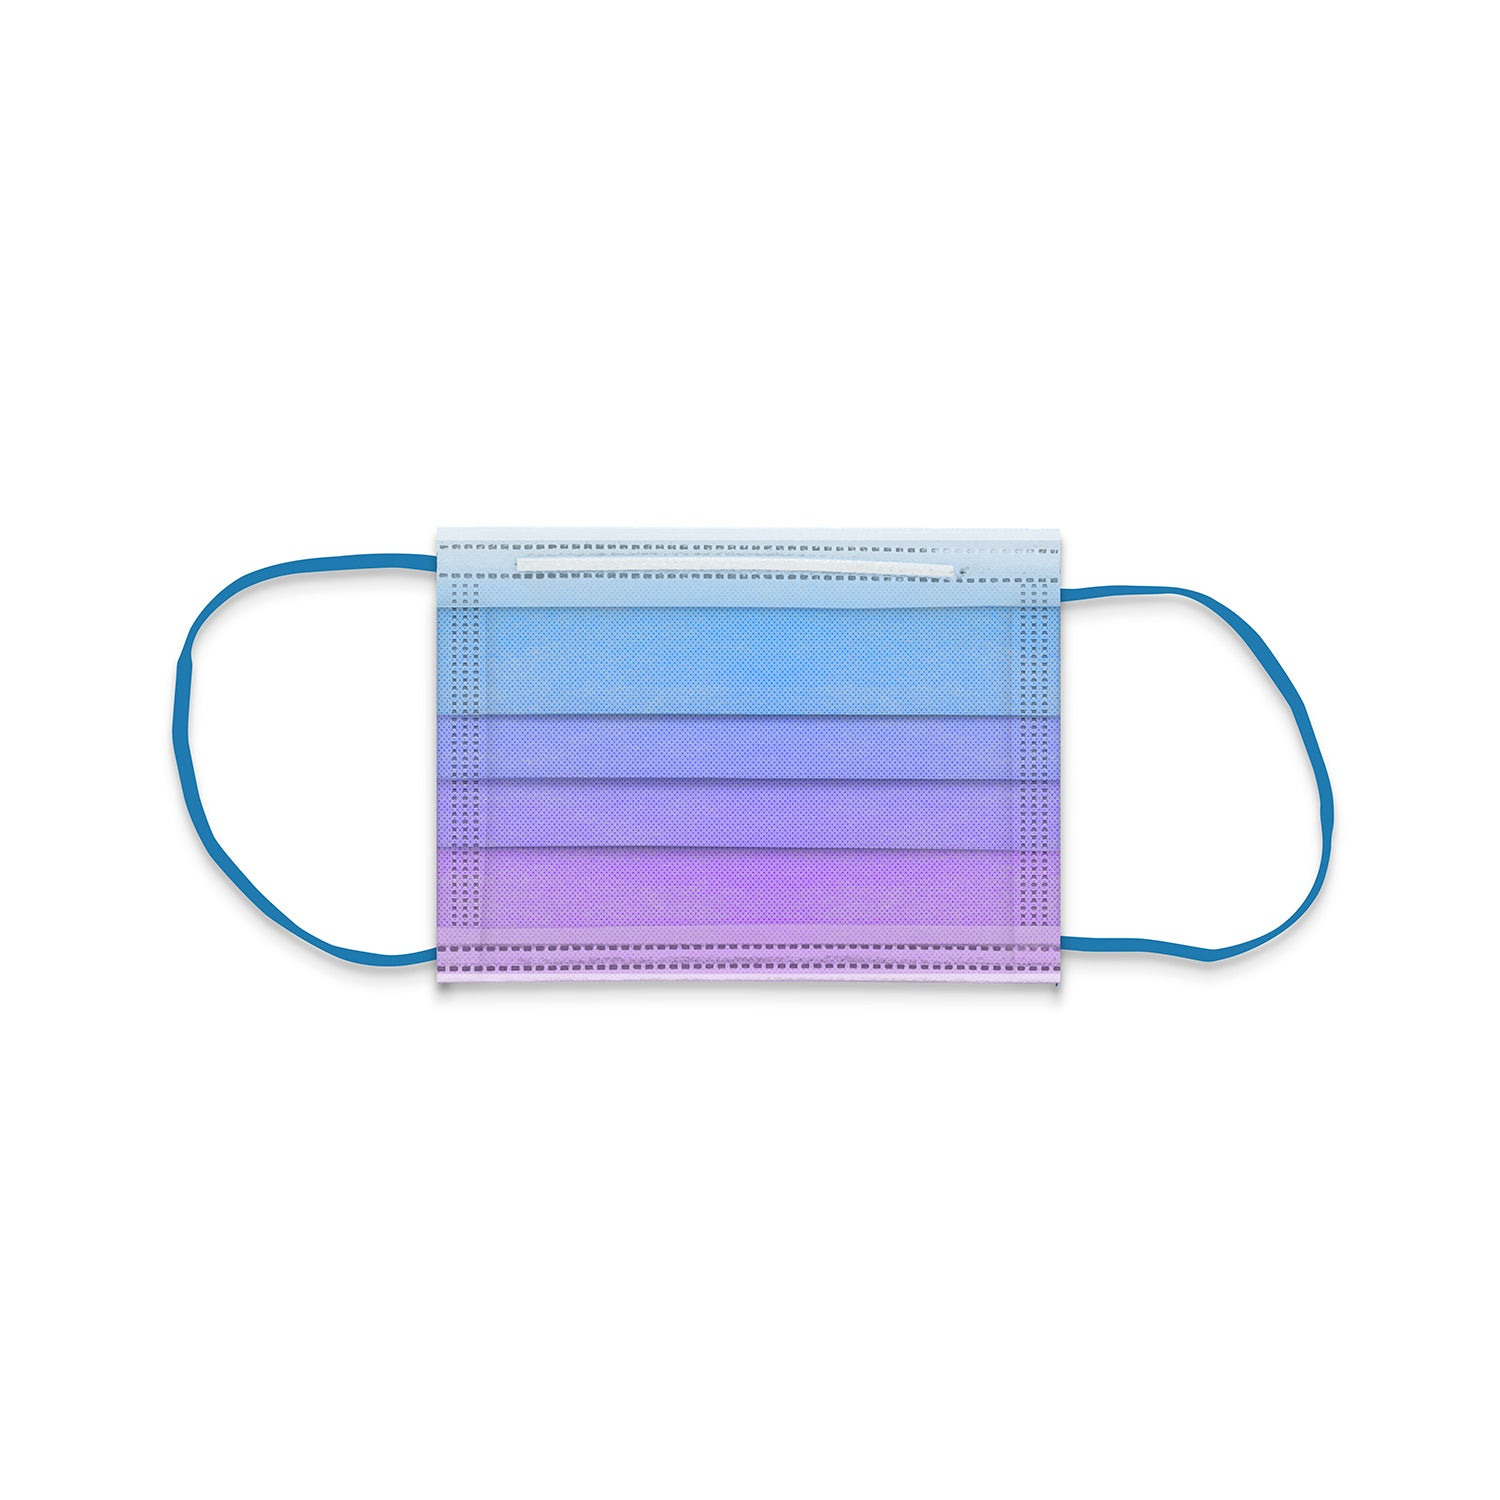 Blue Lagoon Ombré Child Size 3-Ply Surgical Face Mask (50-pack)